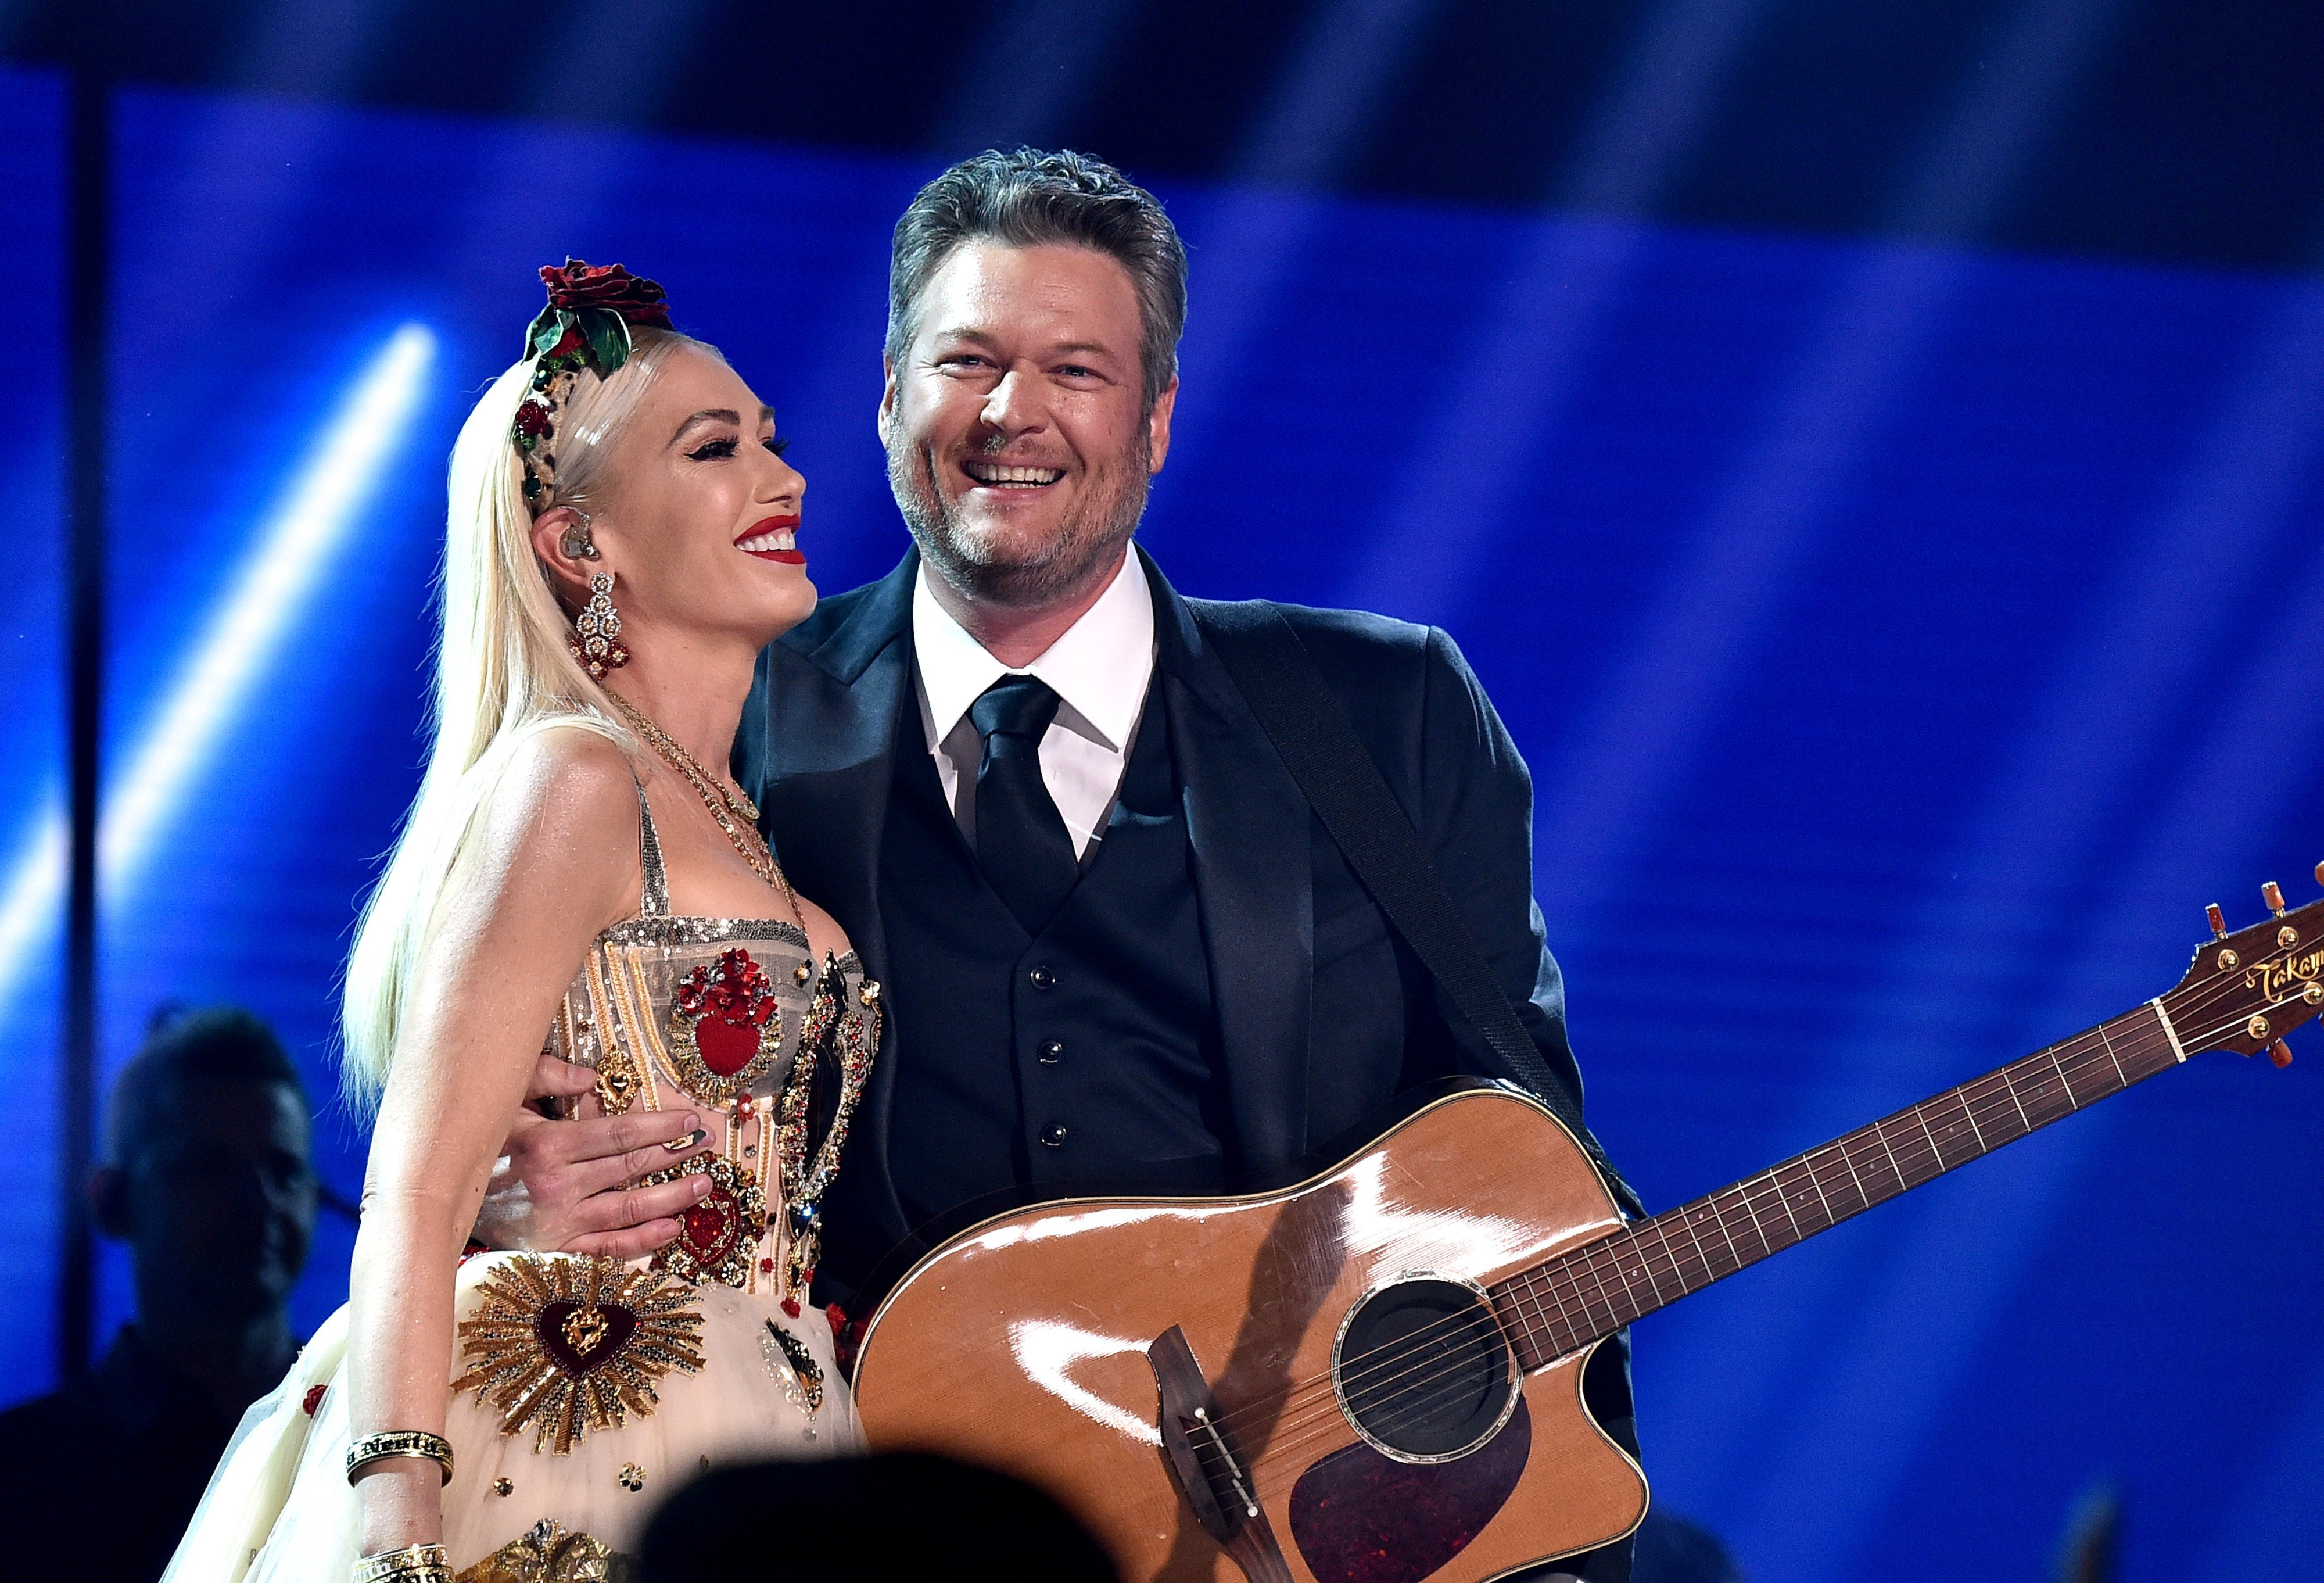 Gwen Stefani (L) and Blake Shelton perform at the 62nd Annual GRAMMY Awards on January 26, 2020 | Photo: GettyImages